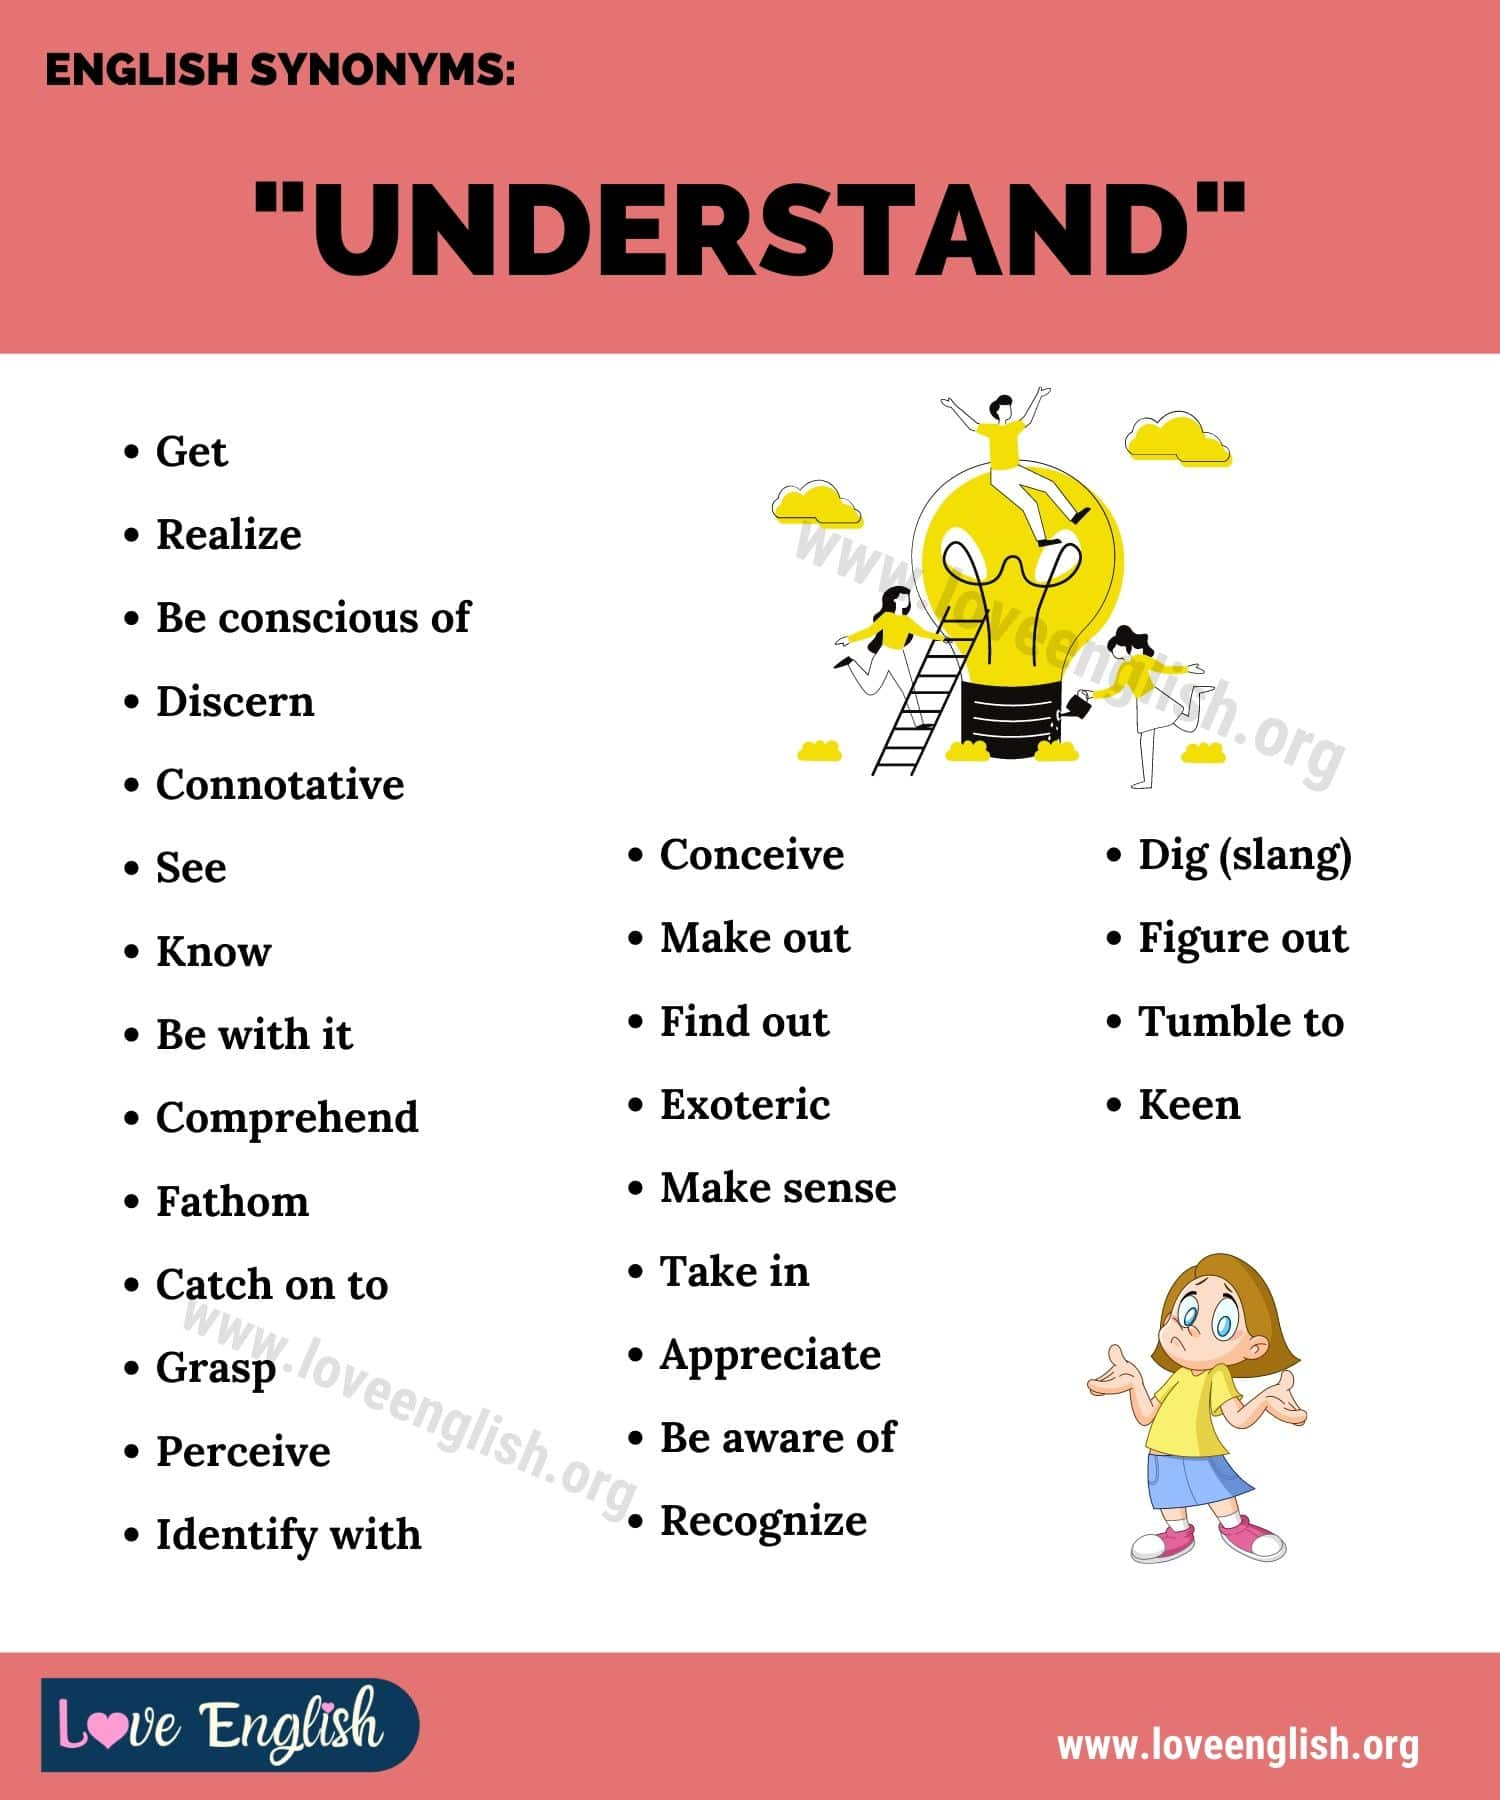 Understand Synonyms